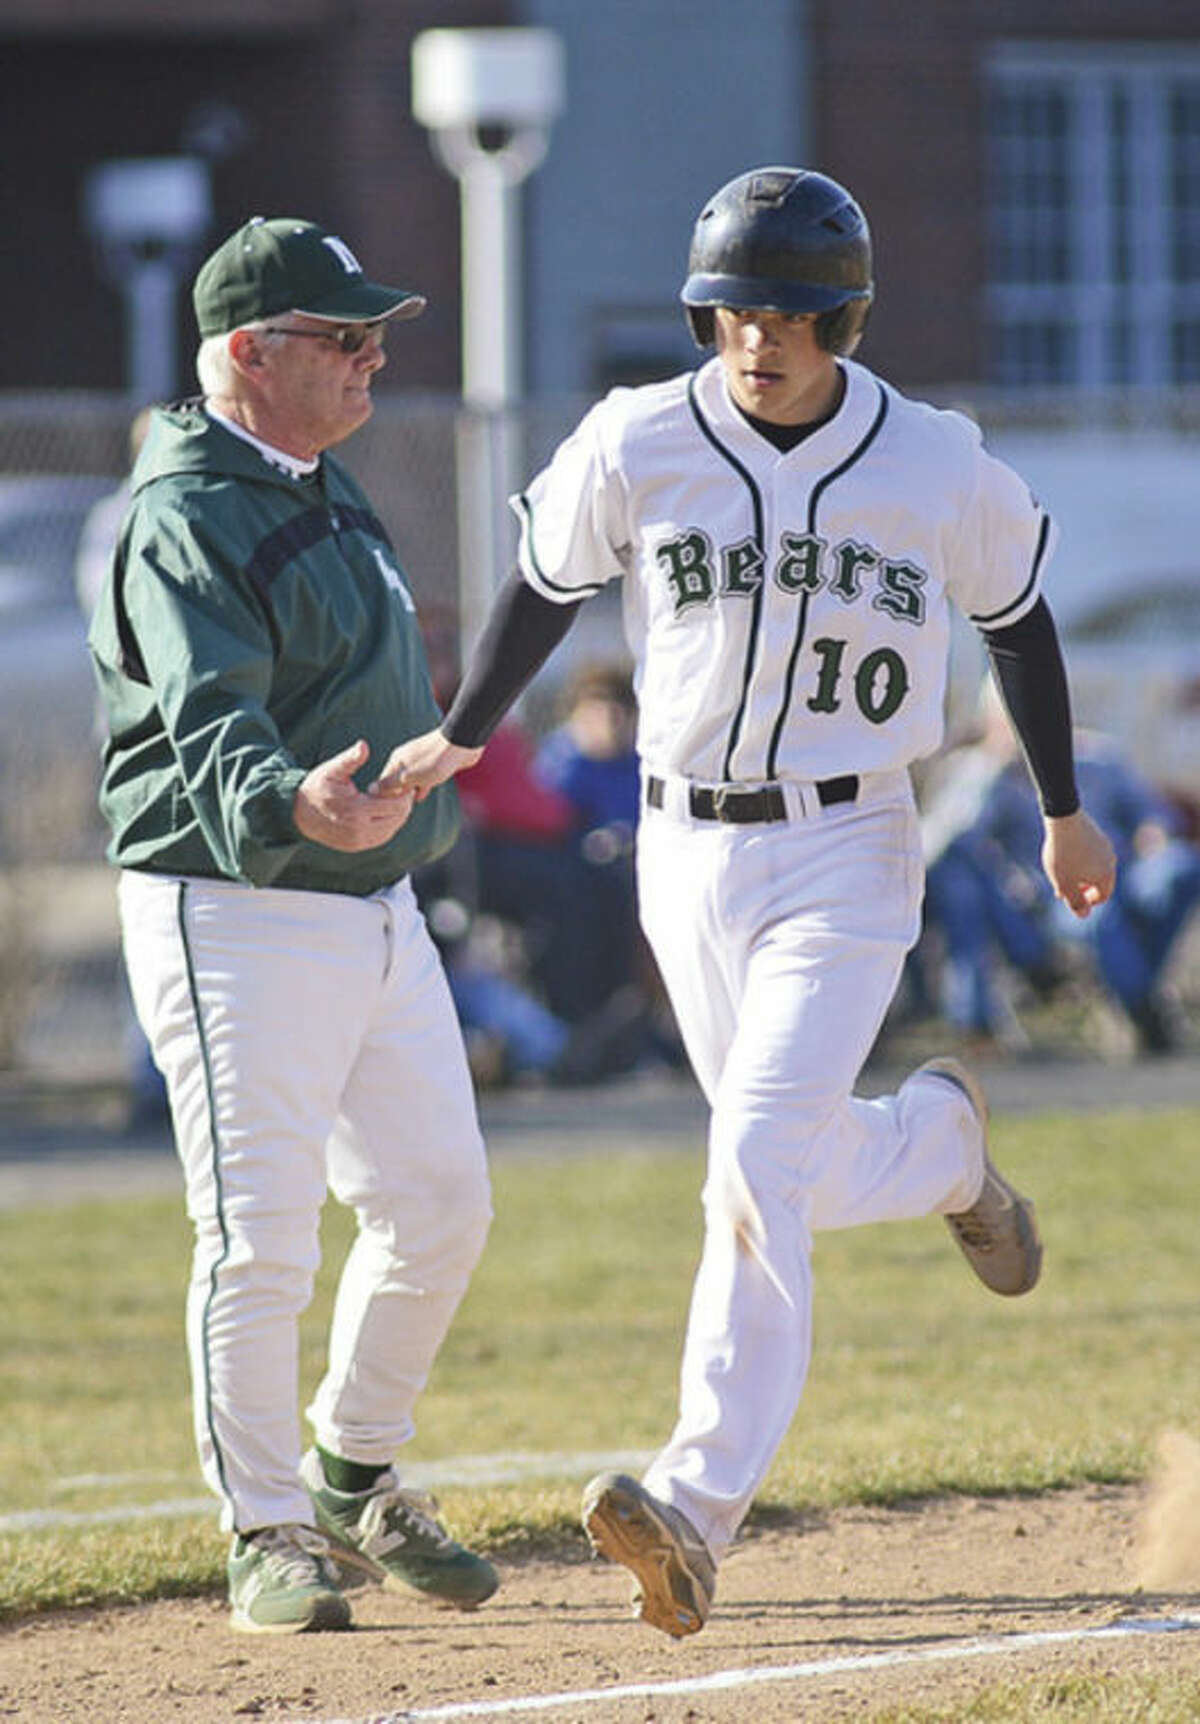 Hour photo/Erik Trautmann Norwalk's Dave Balunek slaps hands with head coach Pete Tucci as he rounds third after hitting a solo home run during Friday's game against Danbury at Malmquist Field. It was the only run Norwalk would get in an 8-1 loss.